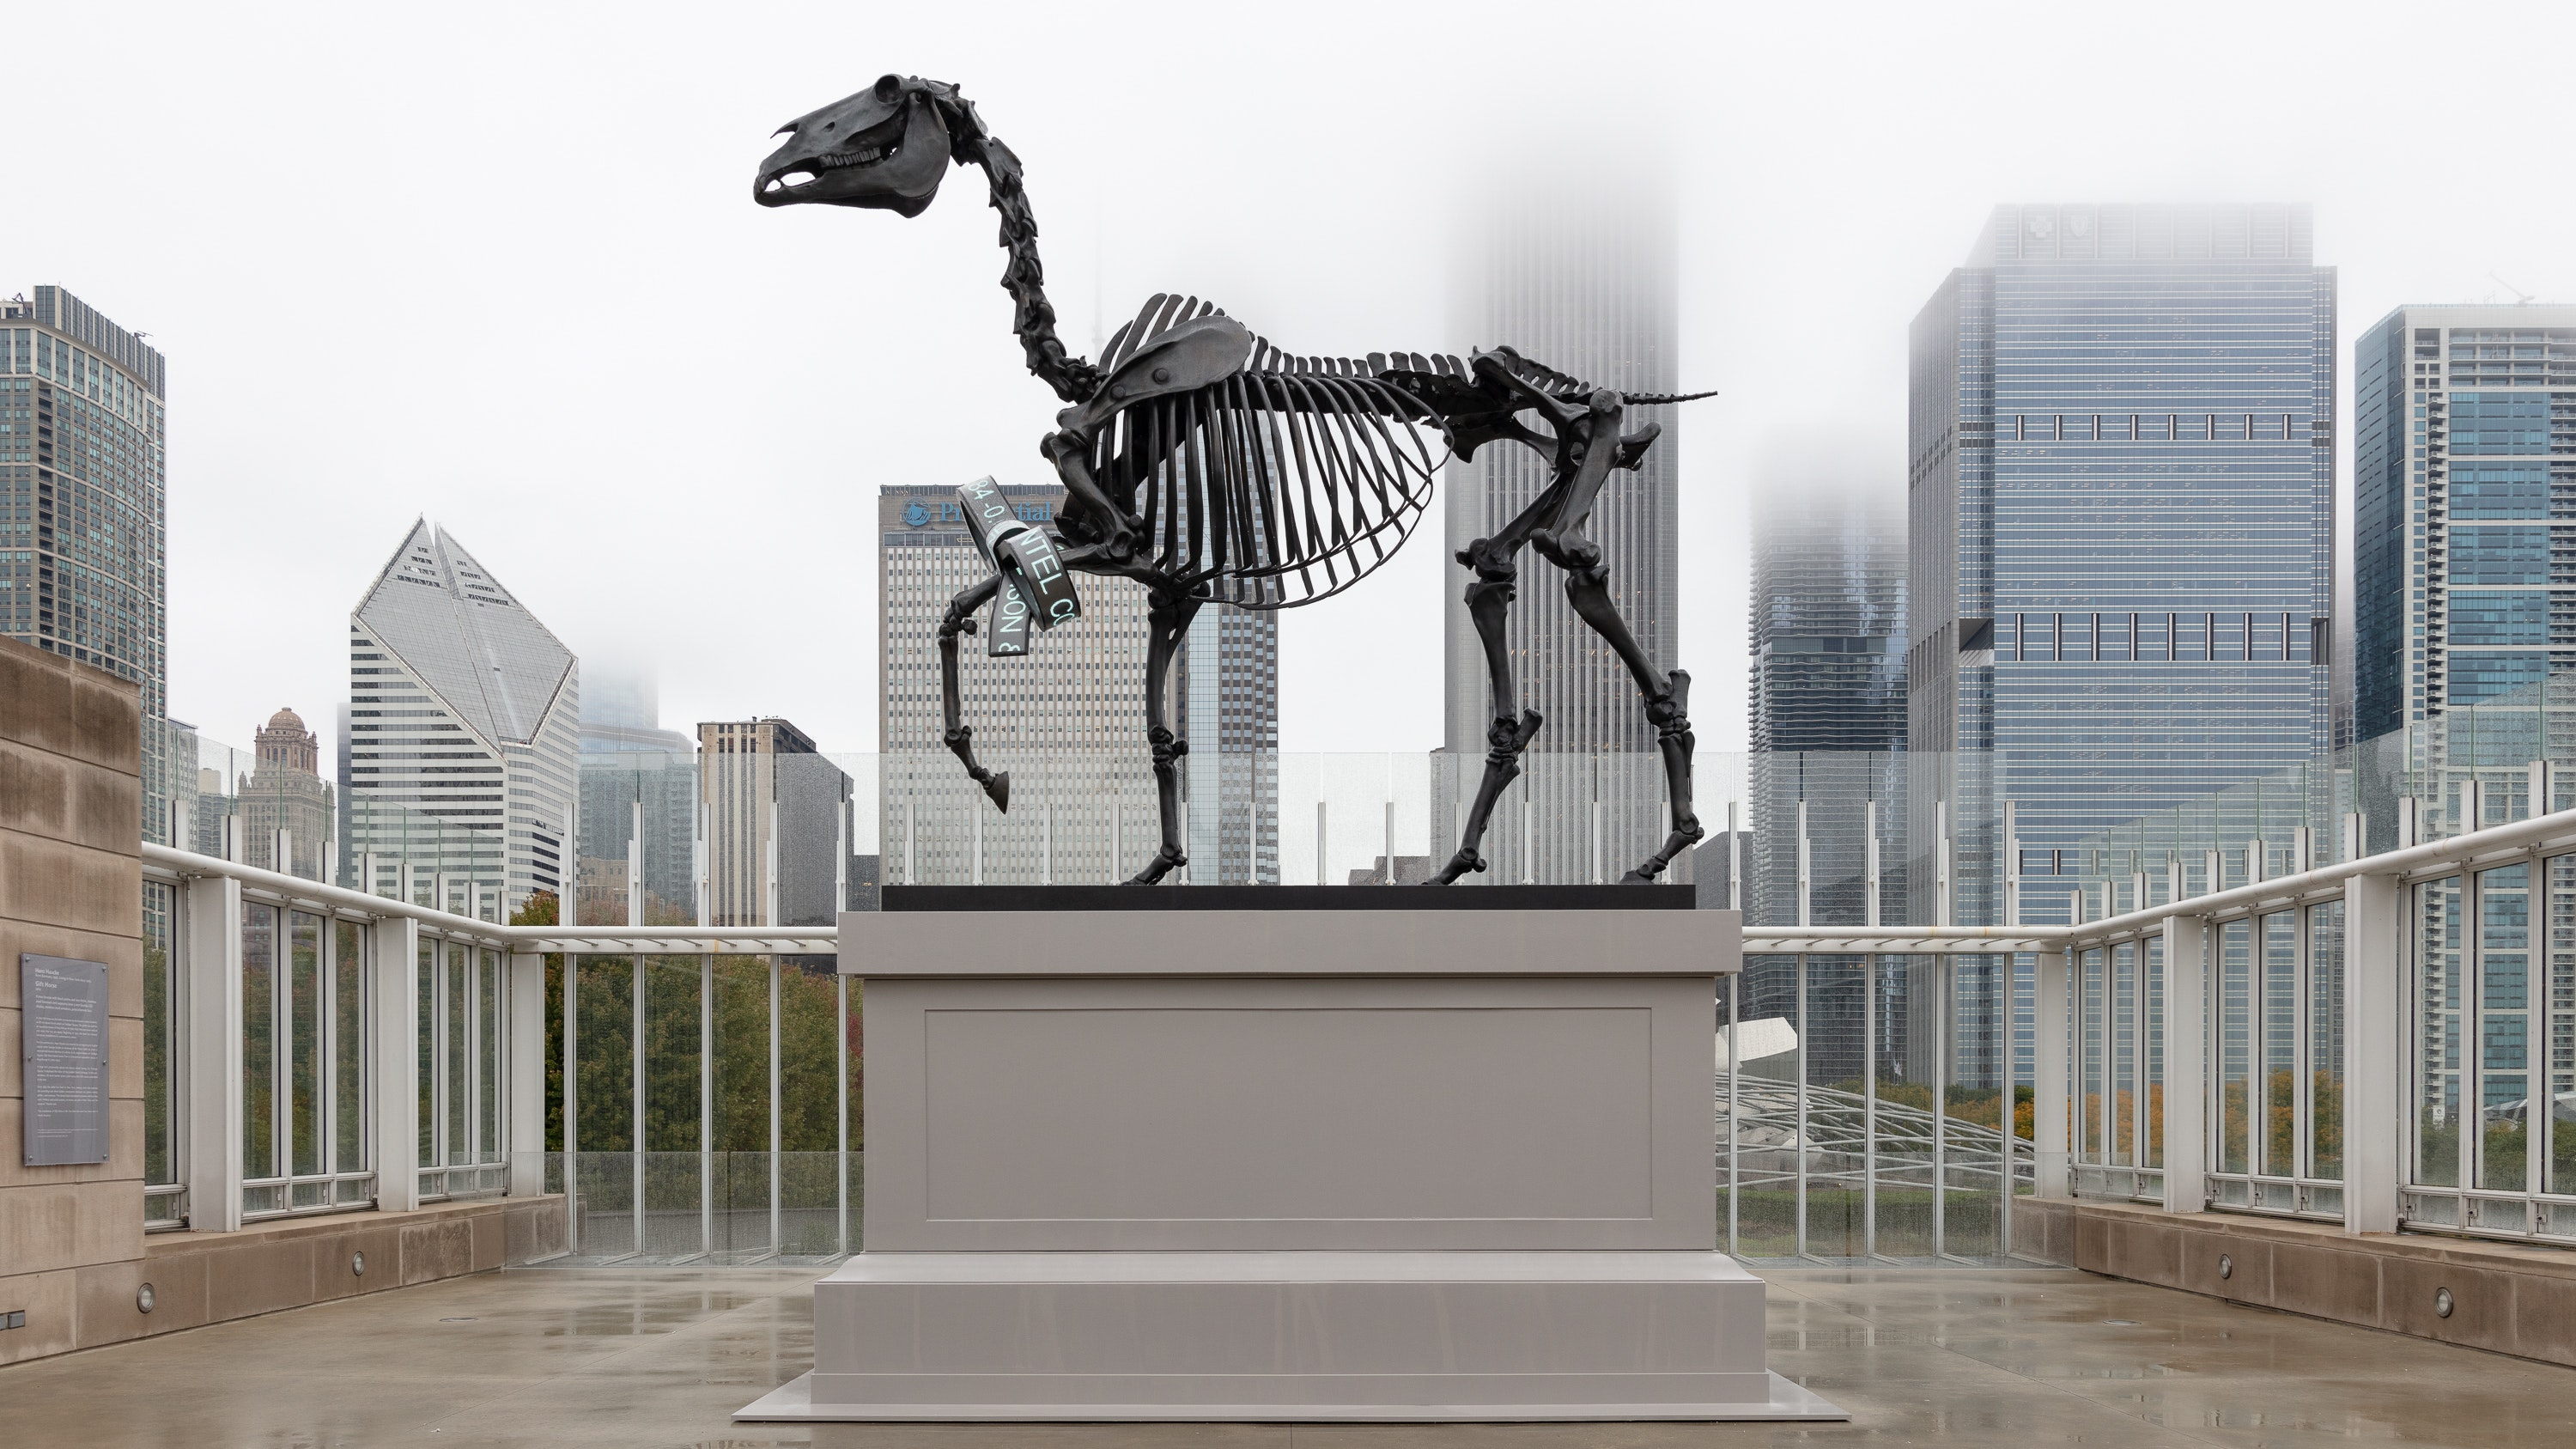 A bronze scultpure of a horse skelepton sits upon a large gray plinth. The entire sculpture is seen against the backdrop of Chicago's skyscrapers.